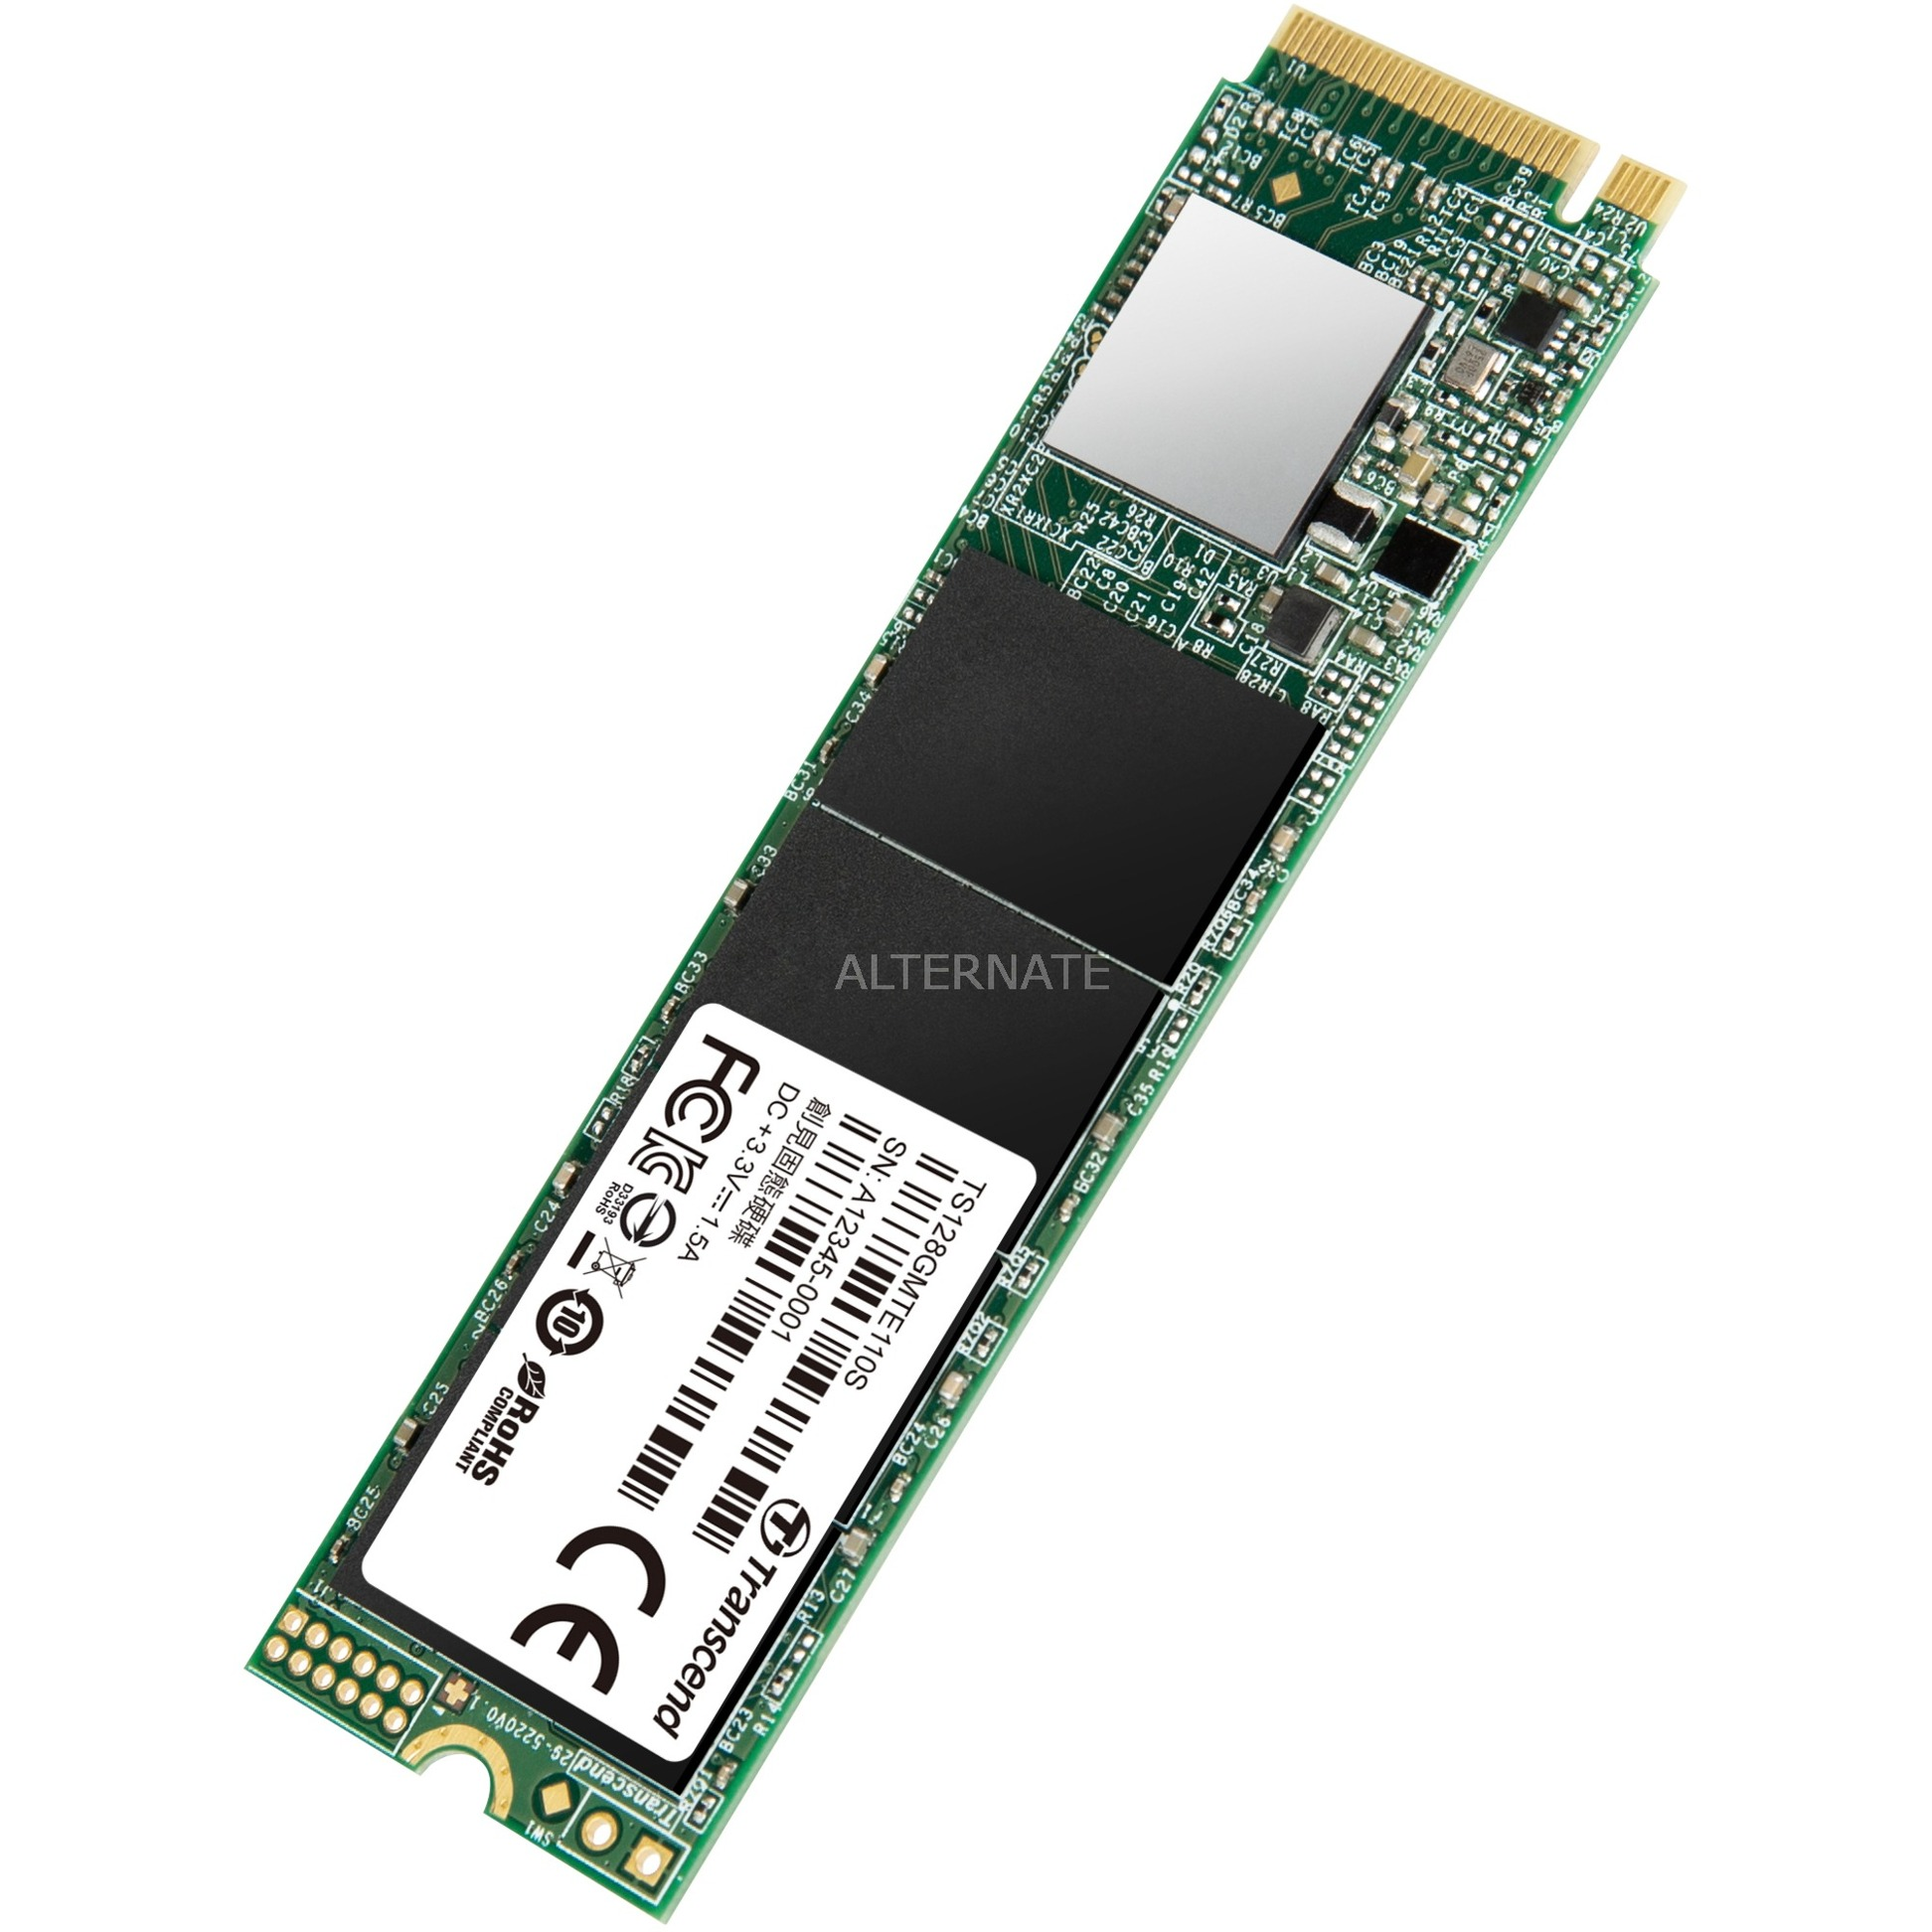 110S 128 GB, Solid State Drive (NVMe PCIe Gen3 x4, 2280 M 2)